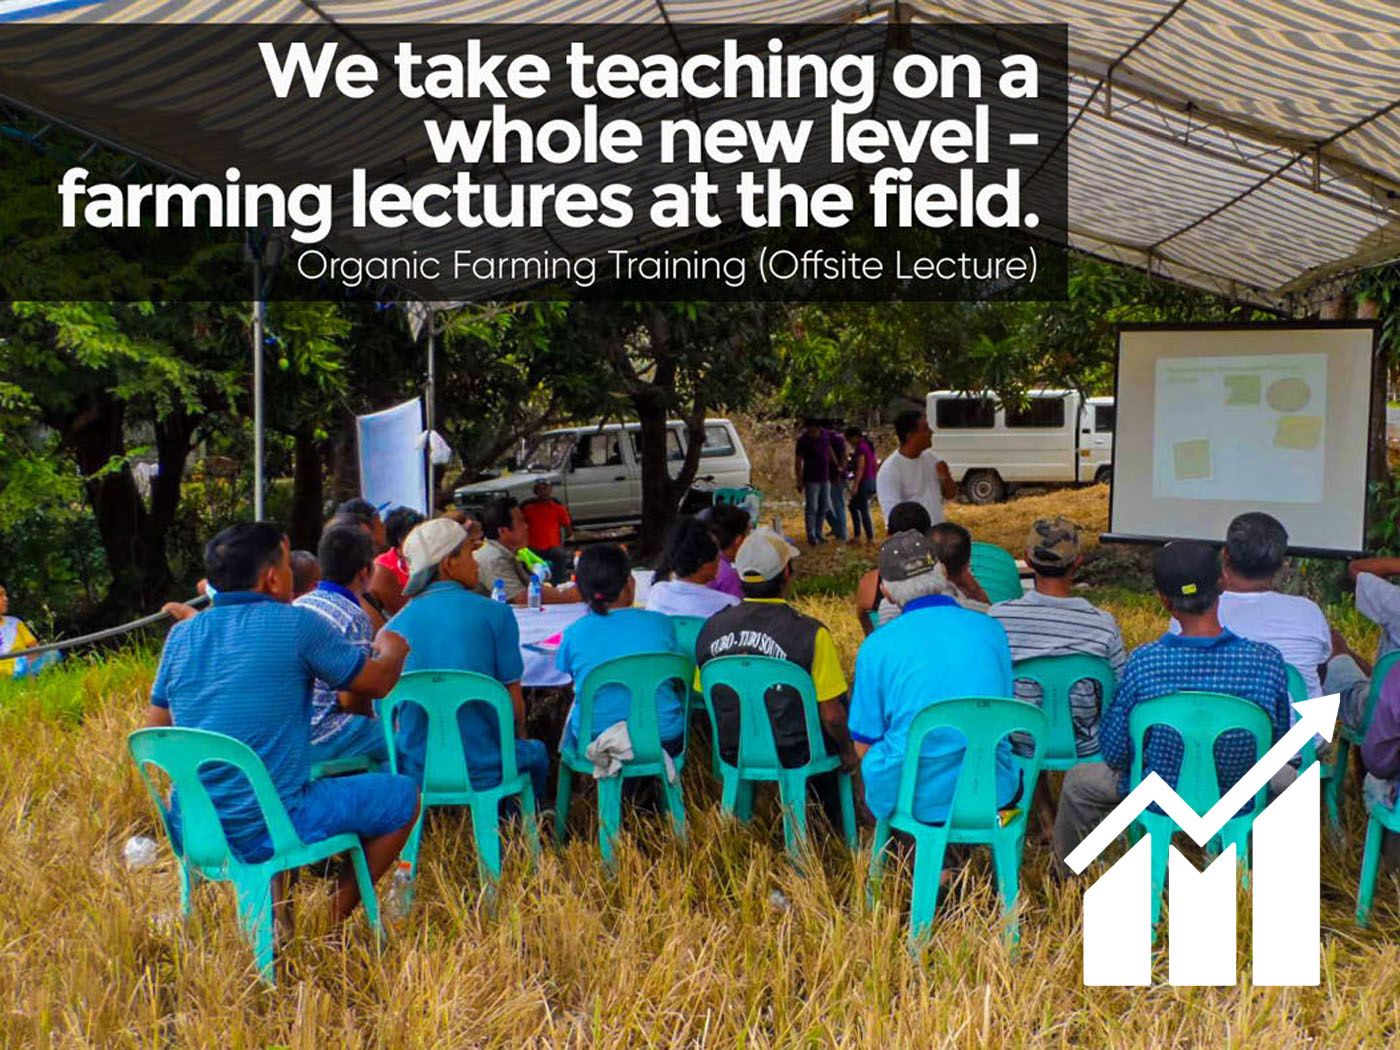 Organic Farming Method (Offsite Lecture) - decent work and economic growth - final